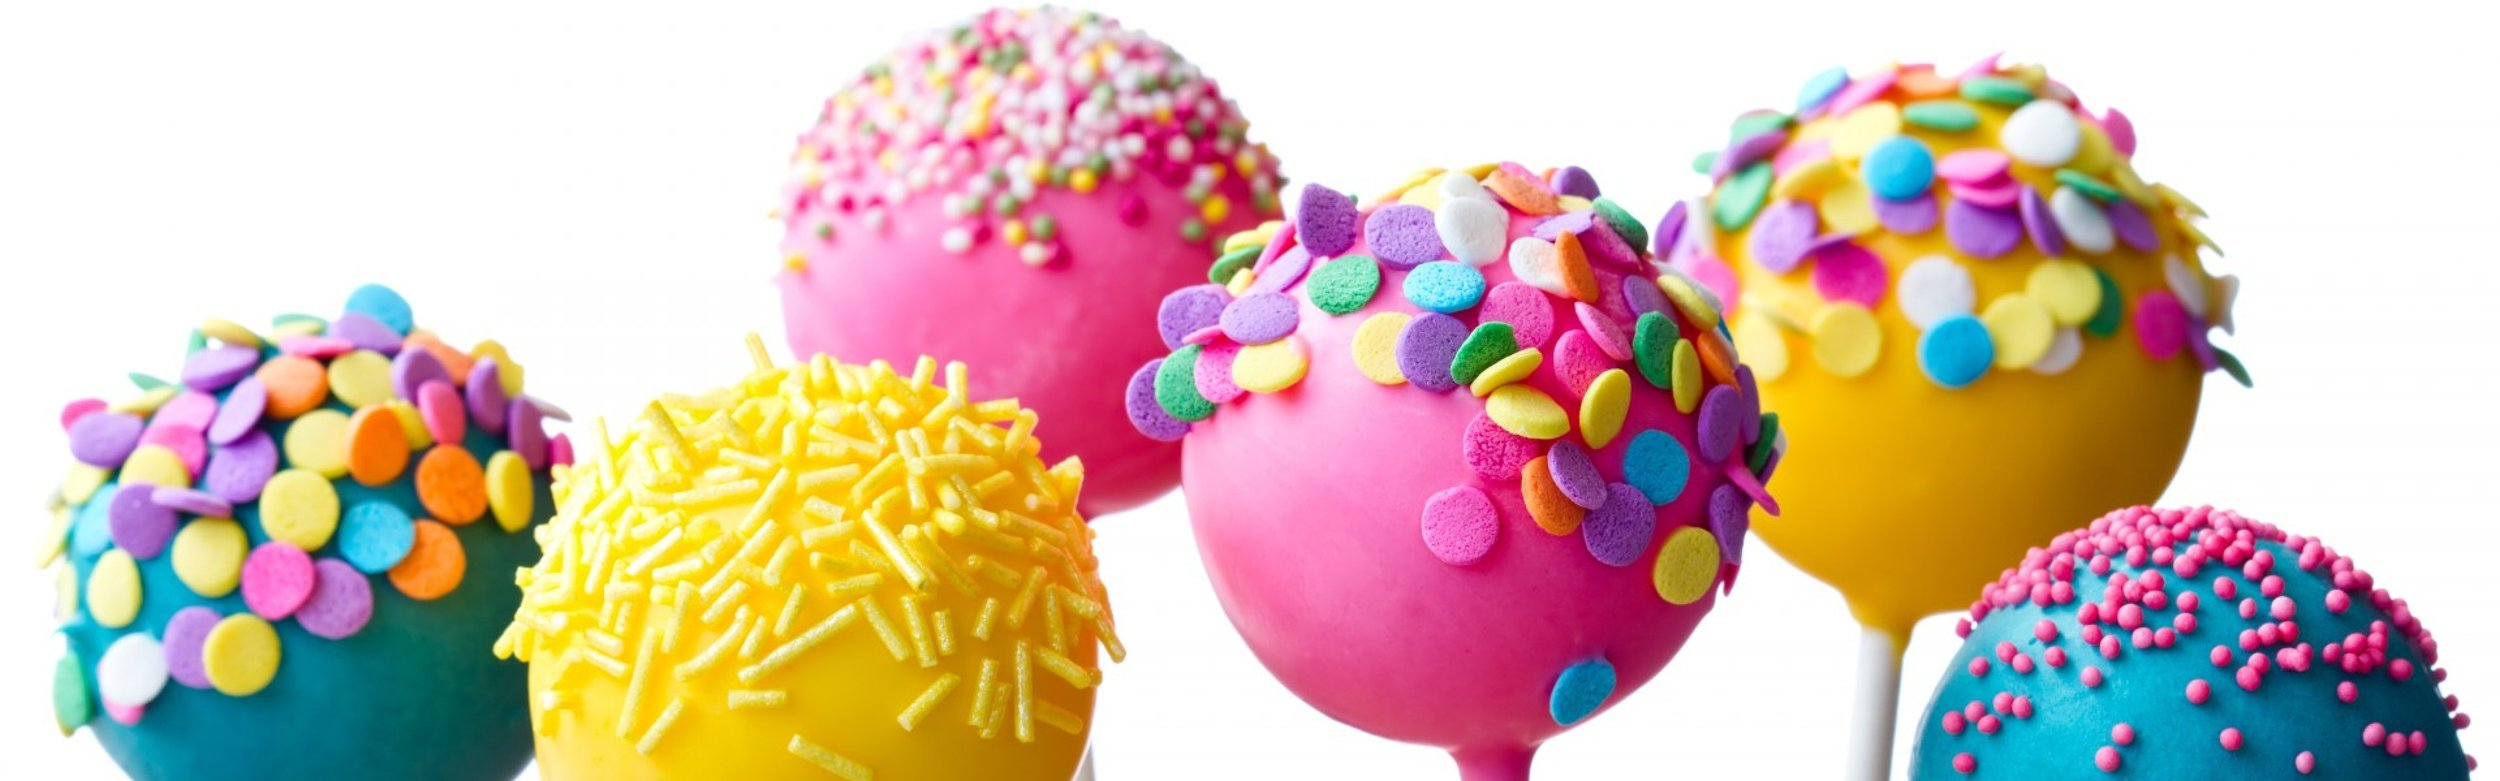 food_candy_sprinkling_frosting_68588_3840x1200